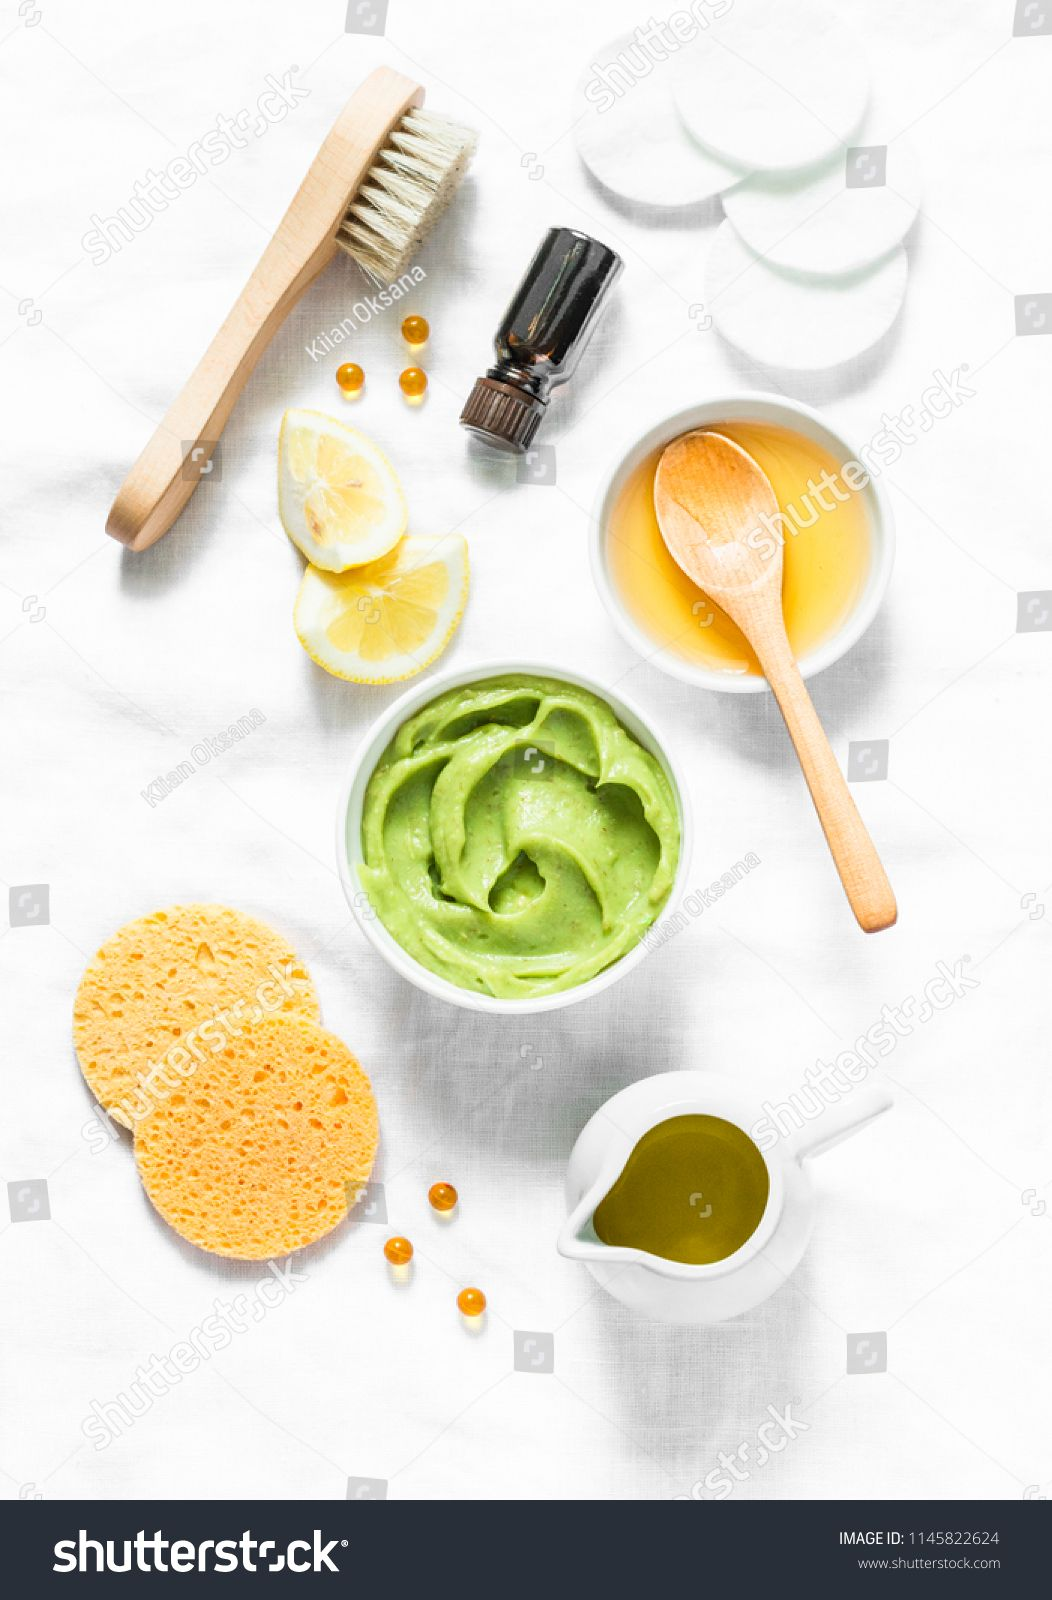 Honey And Avocado Face Mask On Light Background Top View Beauty Youth Skin Care Conce Homemade Skin Care Recipes Natural Skincare Recipes Skin Care Recipes